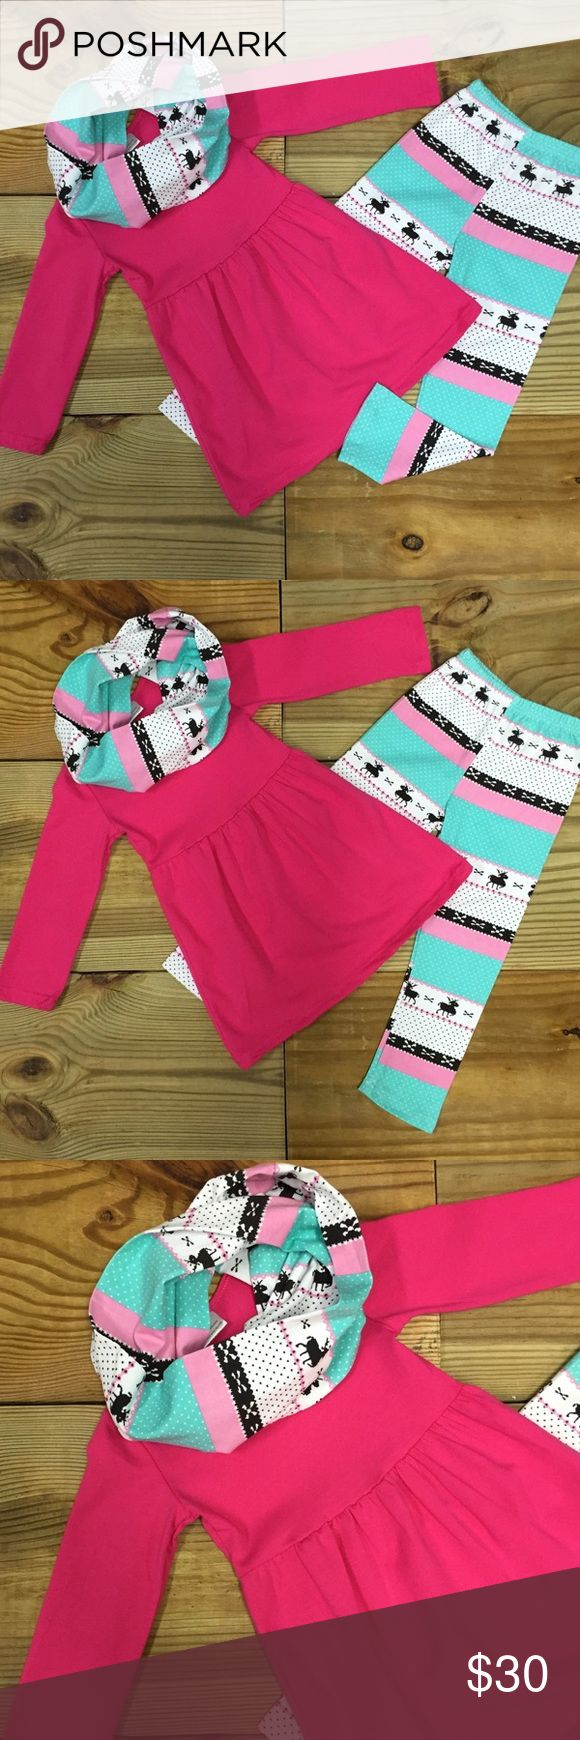 Girls 3-Pc Pink Reindeer Infinity Scarf Outfit Hot pink and blue reindeer 3-pc infinity scarf and matching leggings outfit for girls is made of 97% Cotton & 3% Spandex Super Comfy and Warm for Fall & Winter. School! 12M-6/7 Years. RUNS TRUE TO SIZE-NWT Moxie Girl Matching Sets